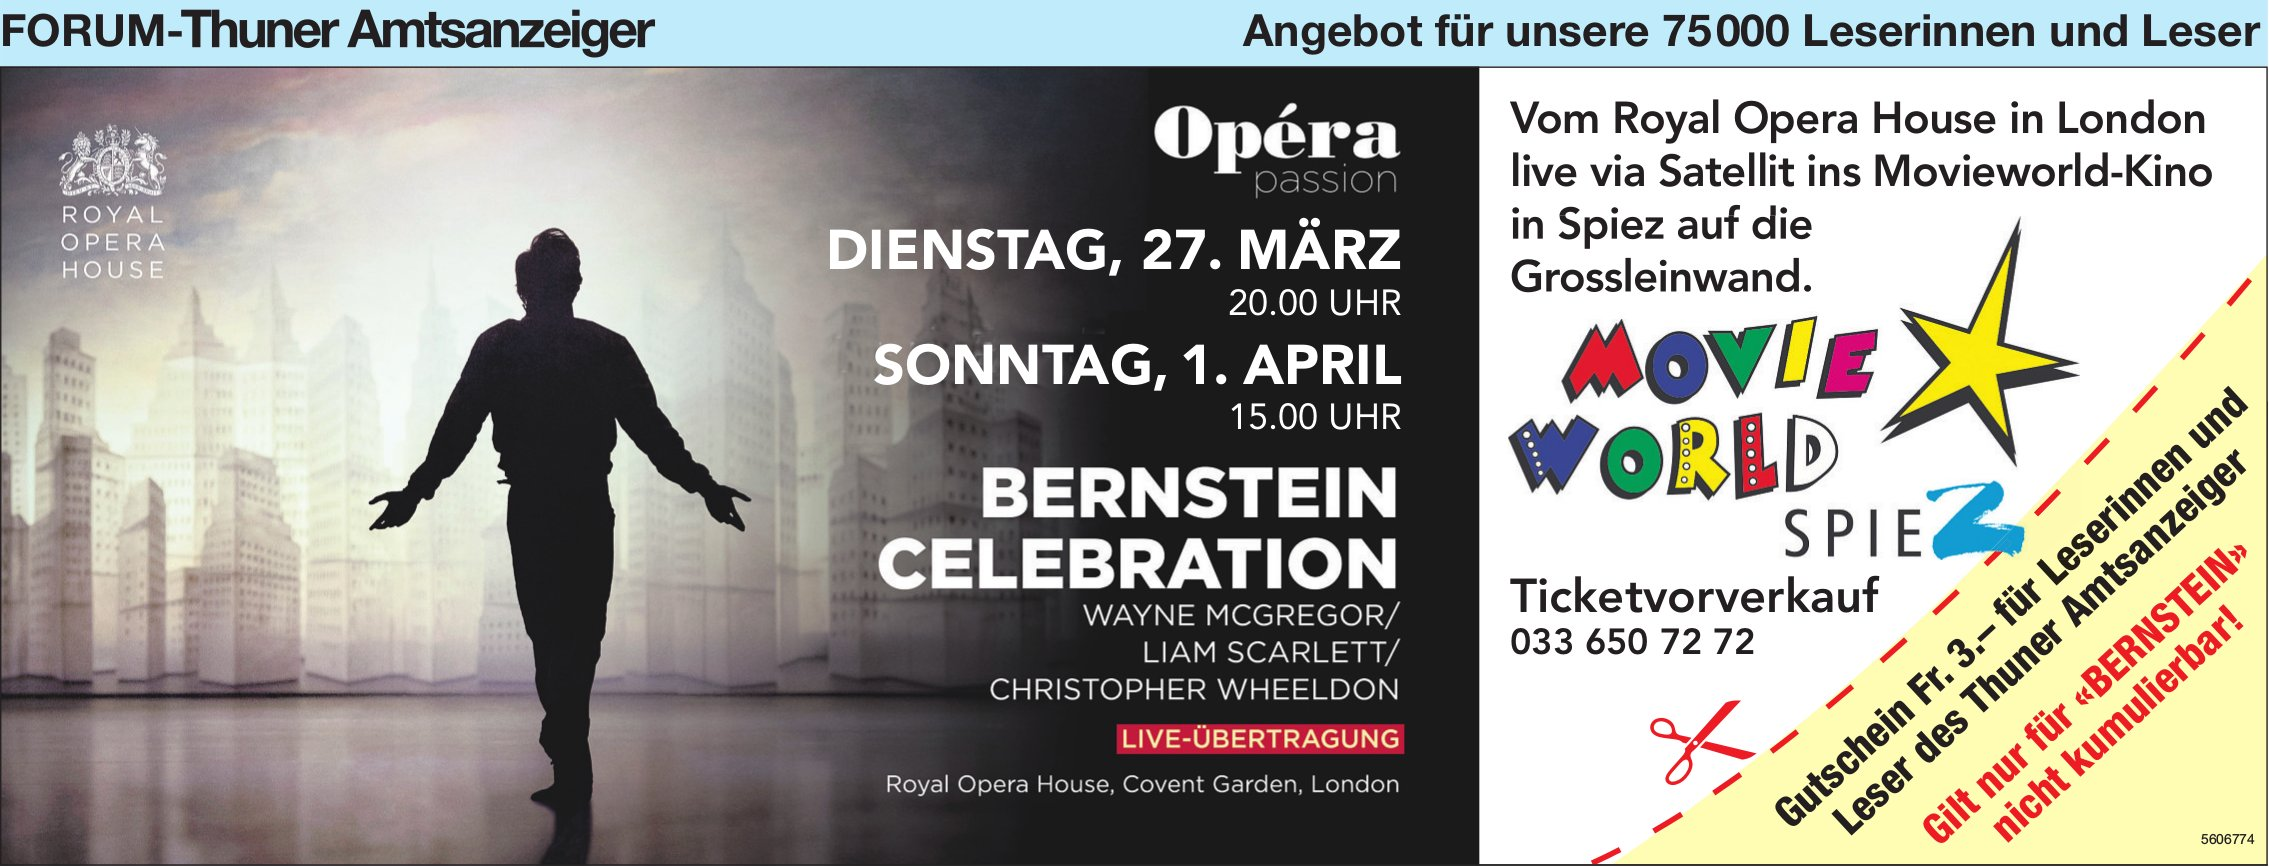 "Forum-Thuner Amtsanzeiger - Opéra Passion: ""Bernstein Celebration"", Live-Übertragung in Movieworld-Kino Spiez"